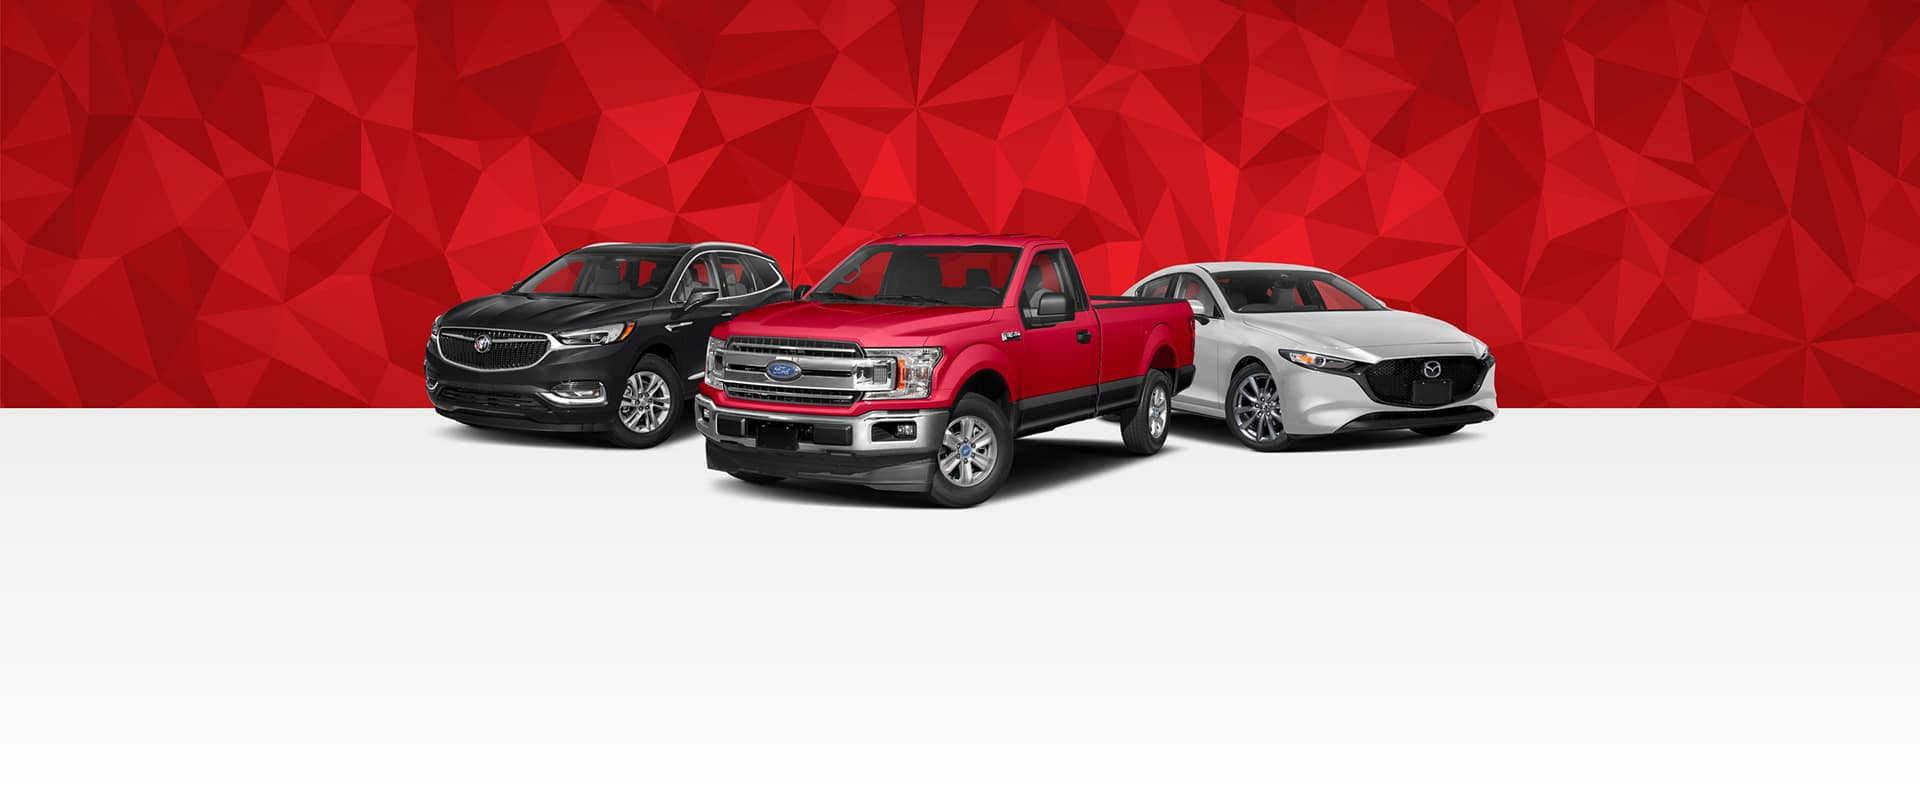 An SUV, a pick-up truck, and a car in front of a red background